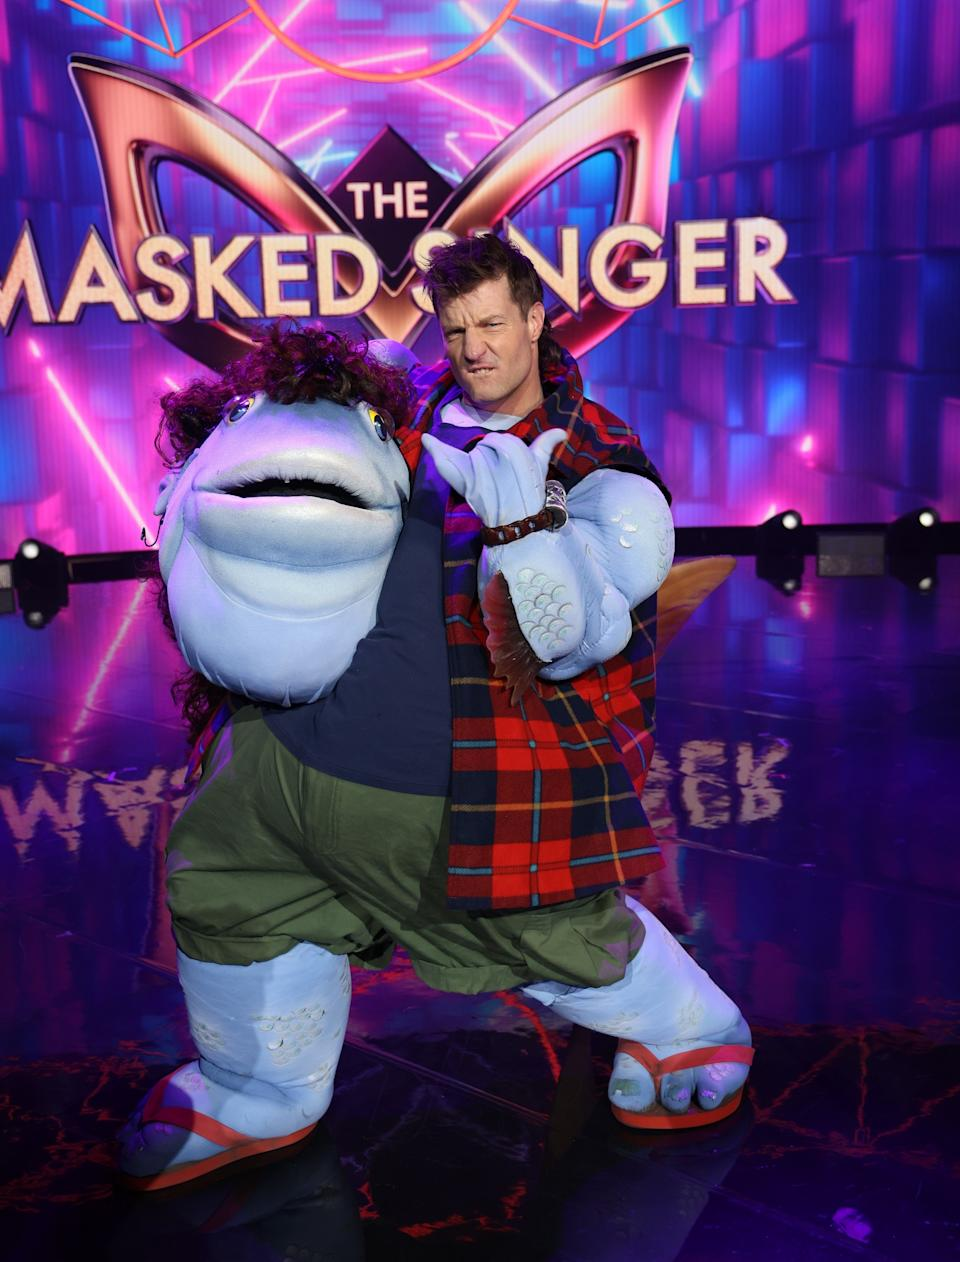 Axle Whitehead on The Masked Singer.